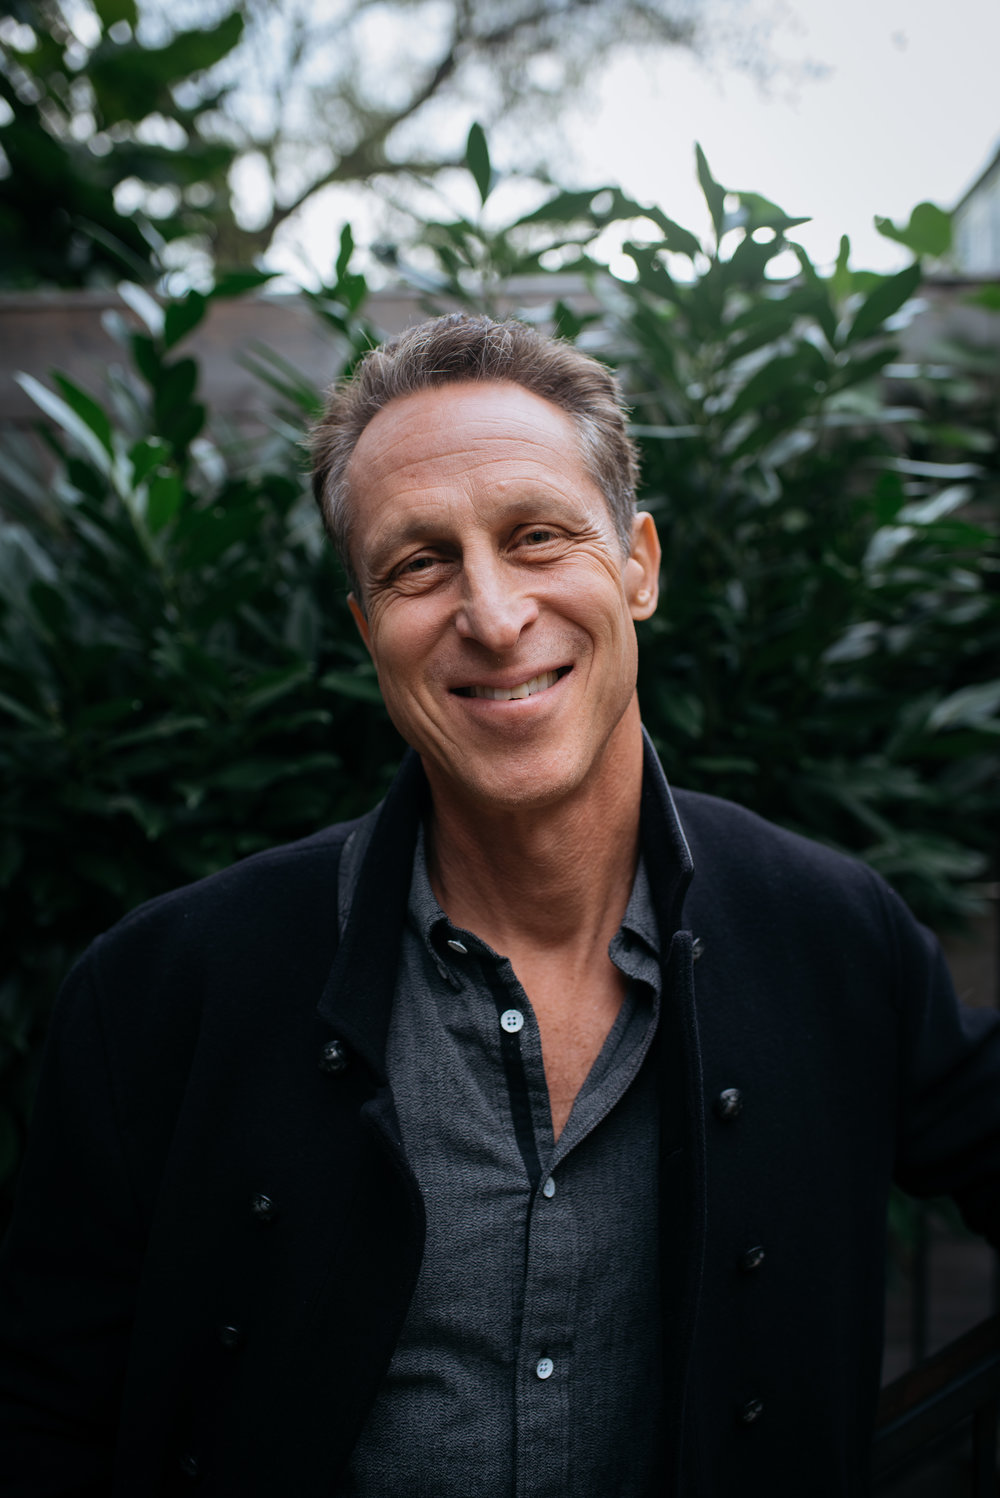 Portrait of Mark Hyman commissioned by One Commune, shot by Dana Jensen.